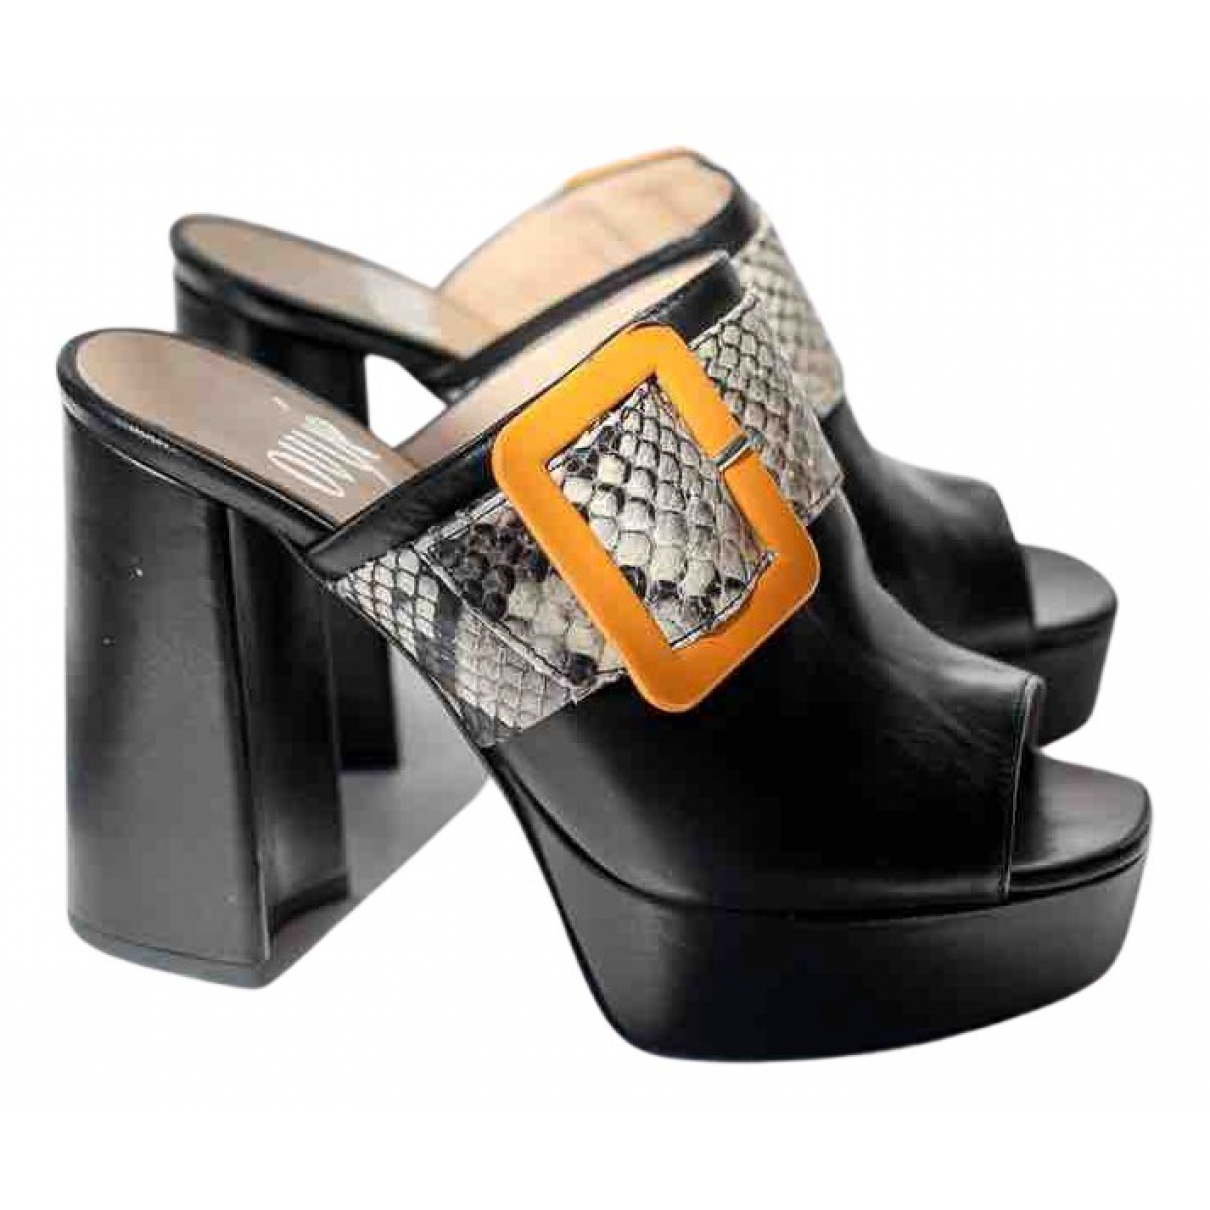 Ovye N Black Leather Mules & Clogs for Women 36 EU